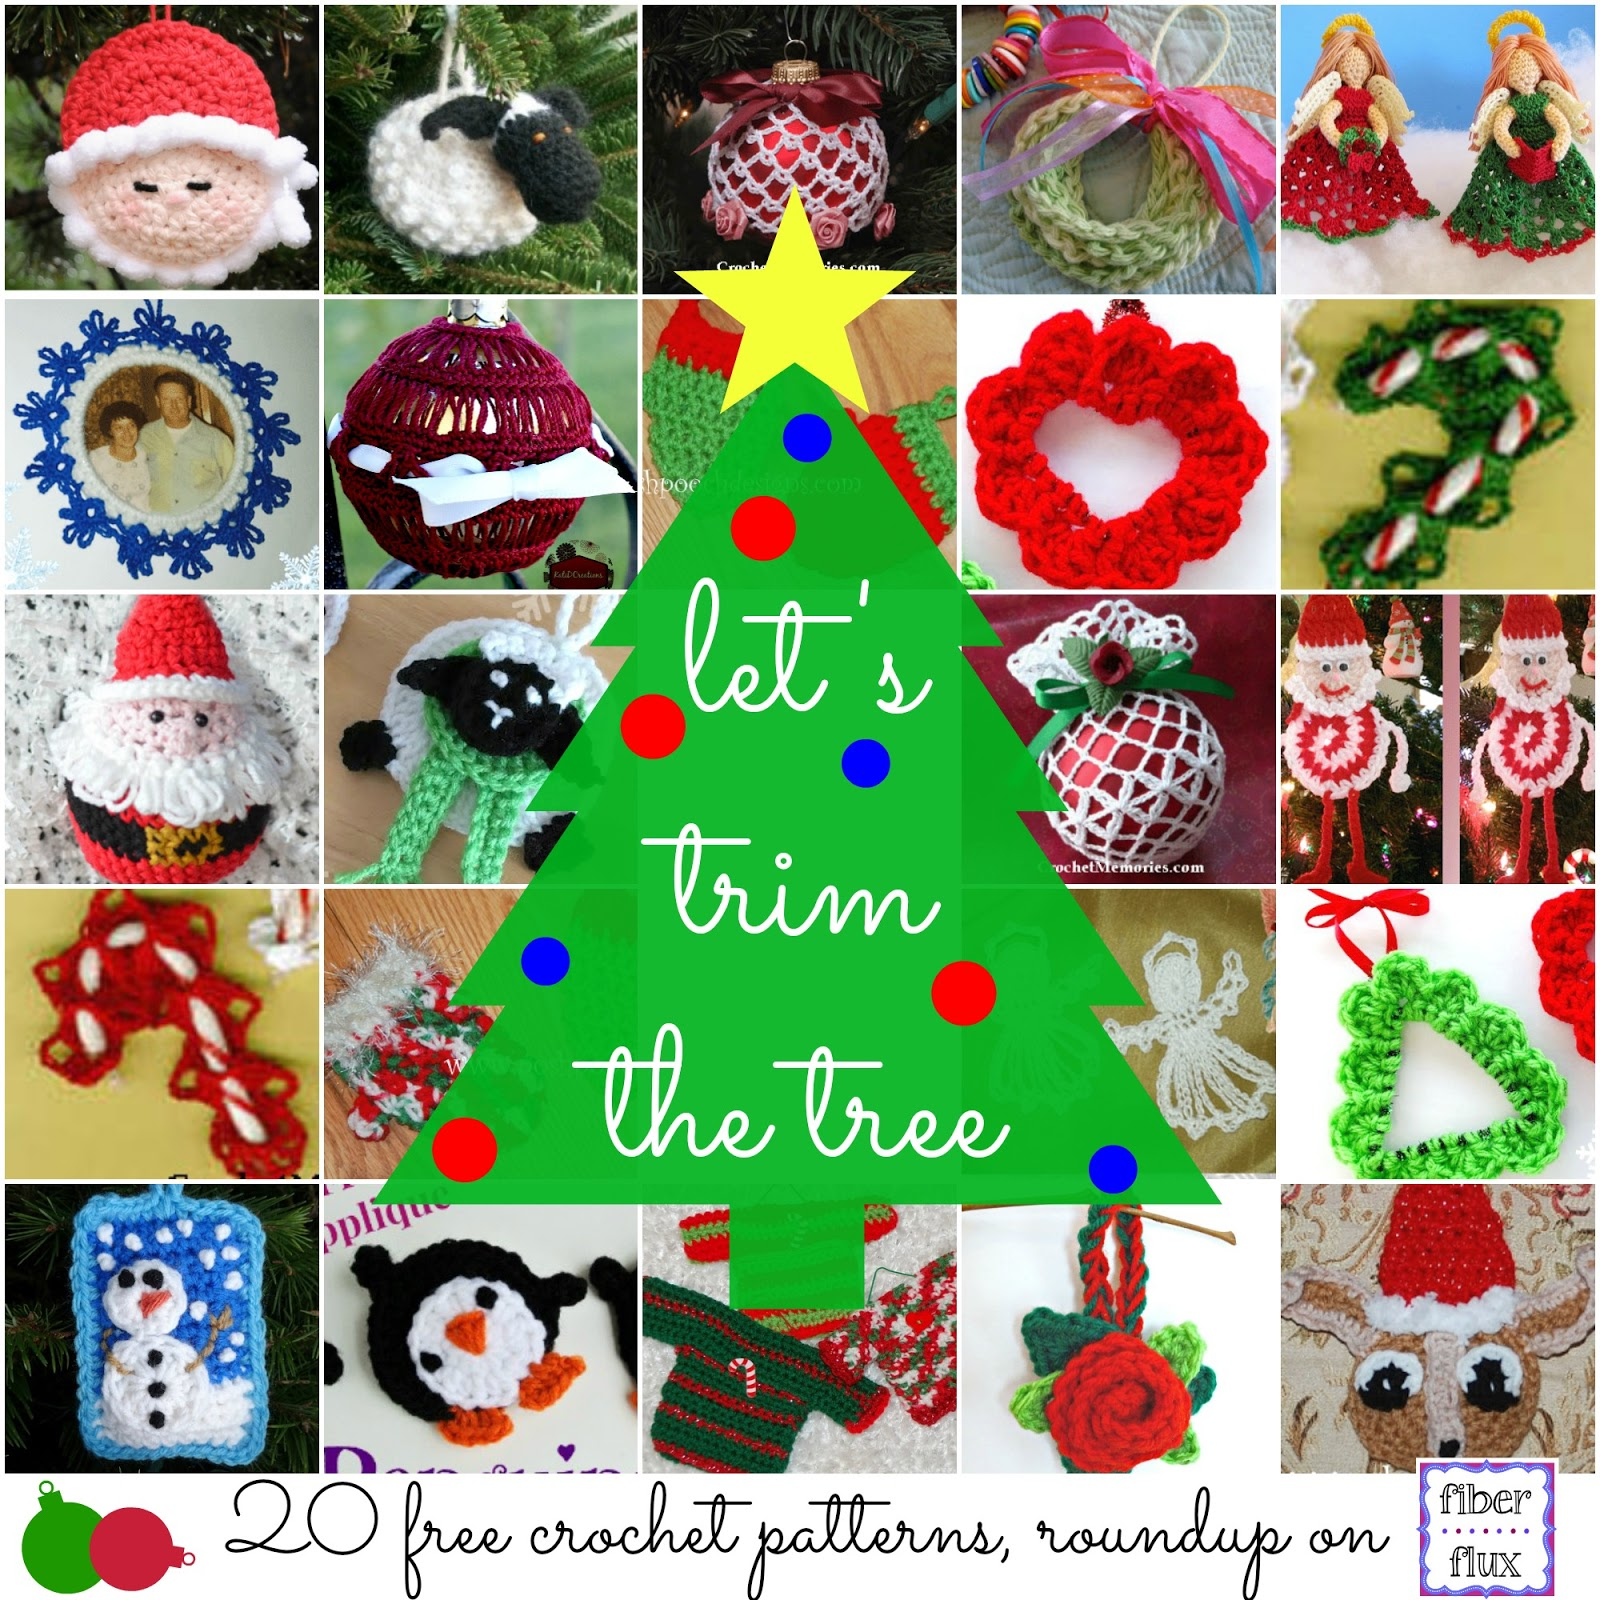 Fiber flux lets trim the tree 20 free crochet ornament patterns 20 free crochet ornament patterns i love ornament projects they are fun to make use up yarn leftovers and add a lovely handmade touch to your tree bankloansurffo Choice Image